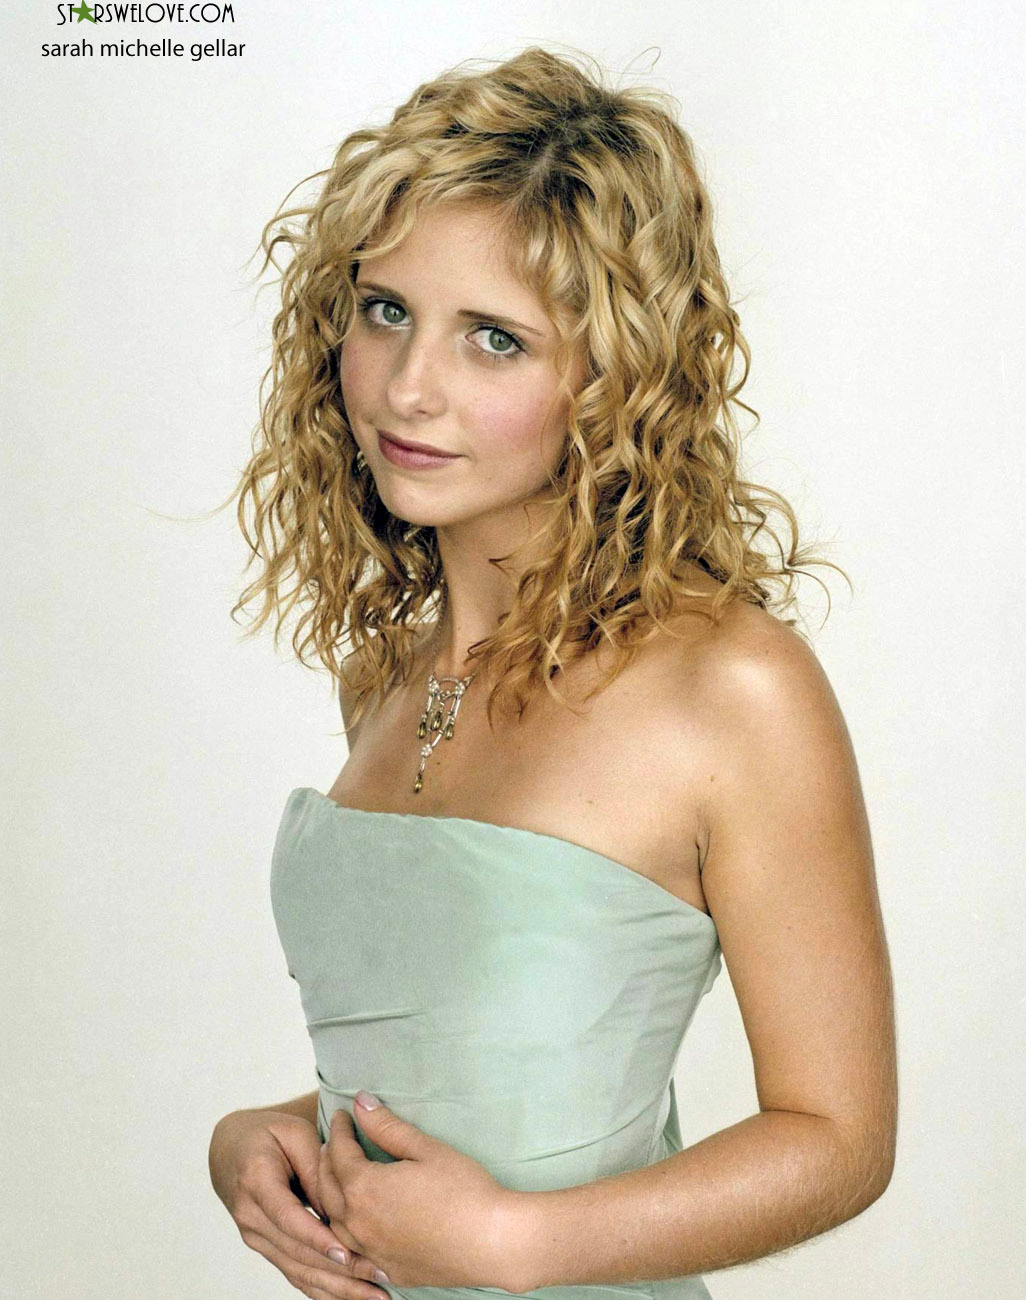 Sarah Michelle Gellar photo (sarah_michelle_gellar017, 1026 x 1300 pixels, 255 kB)